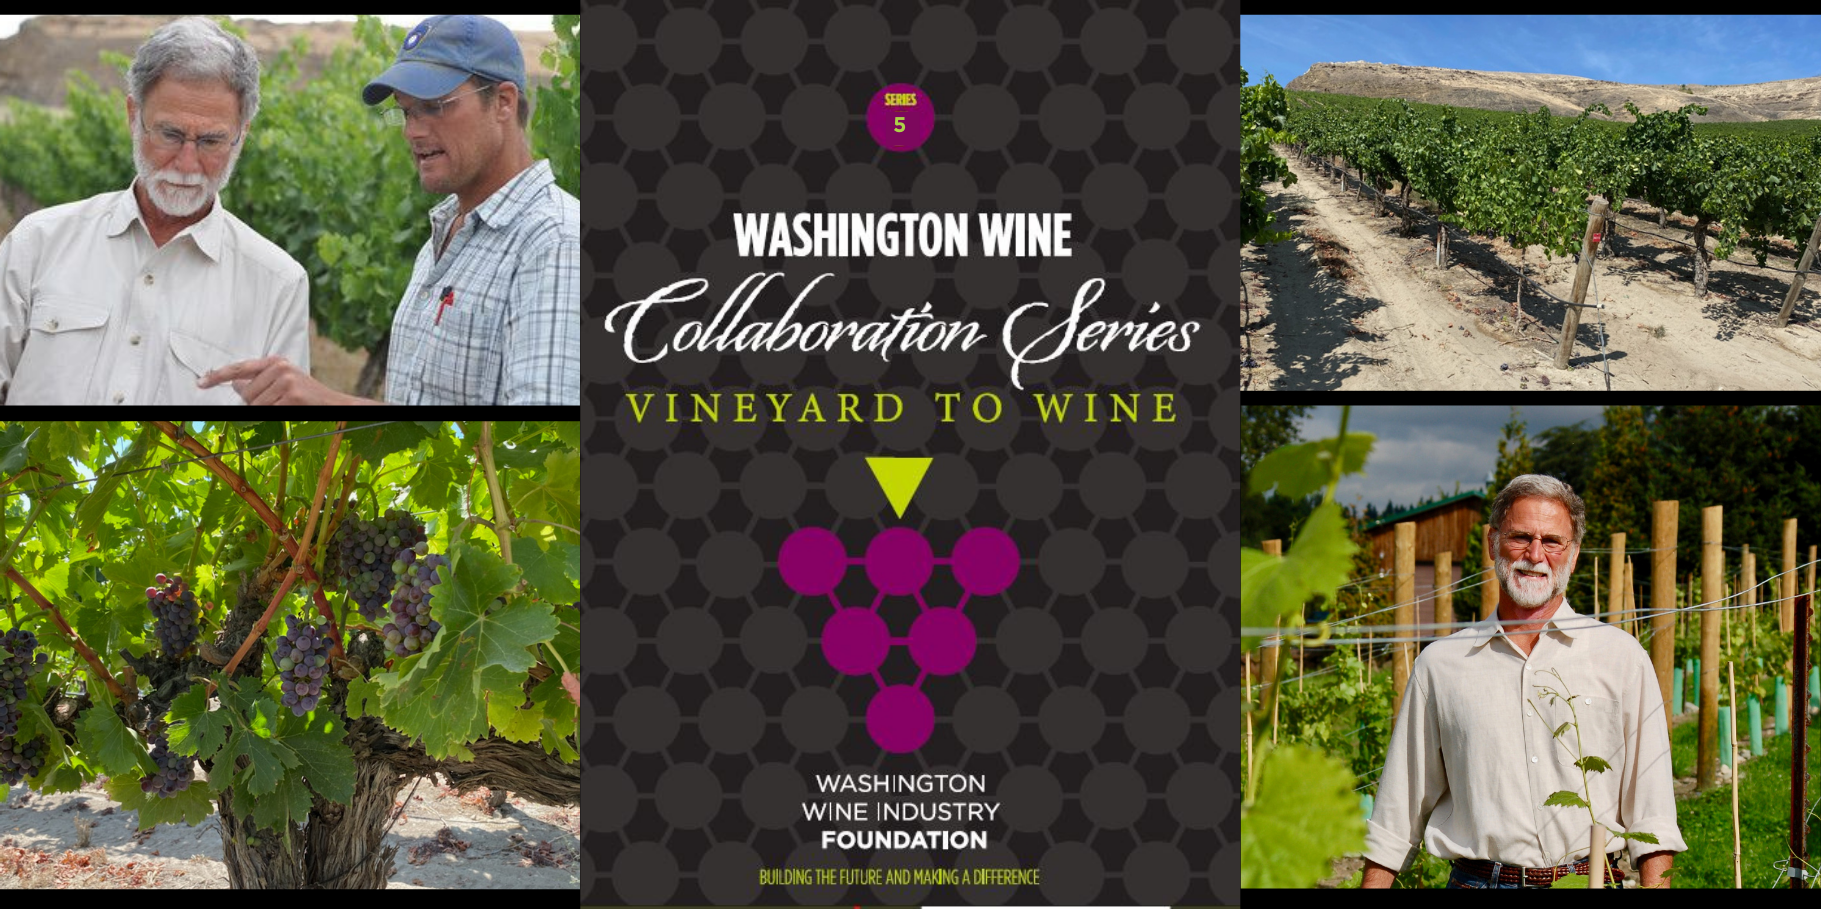 Washington Wine Collaboration Series #6 label + picture of winegrapes, vineyard, and winemaker collaborating with grower